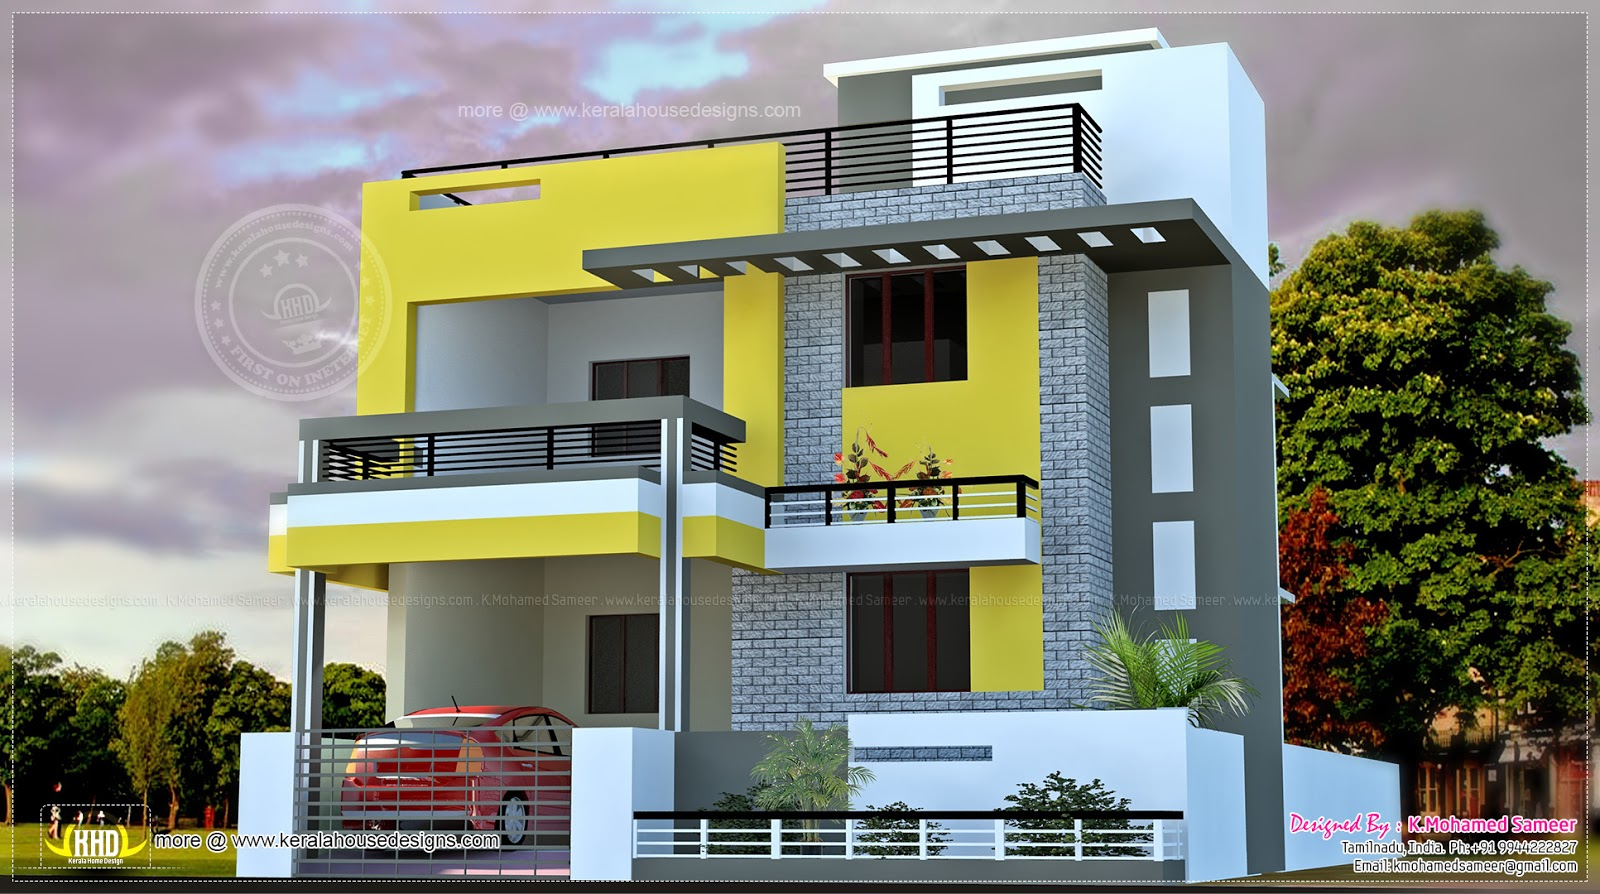 India house plan in modern style   Kerala home design and floor plansModern style Indian home  House specification